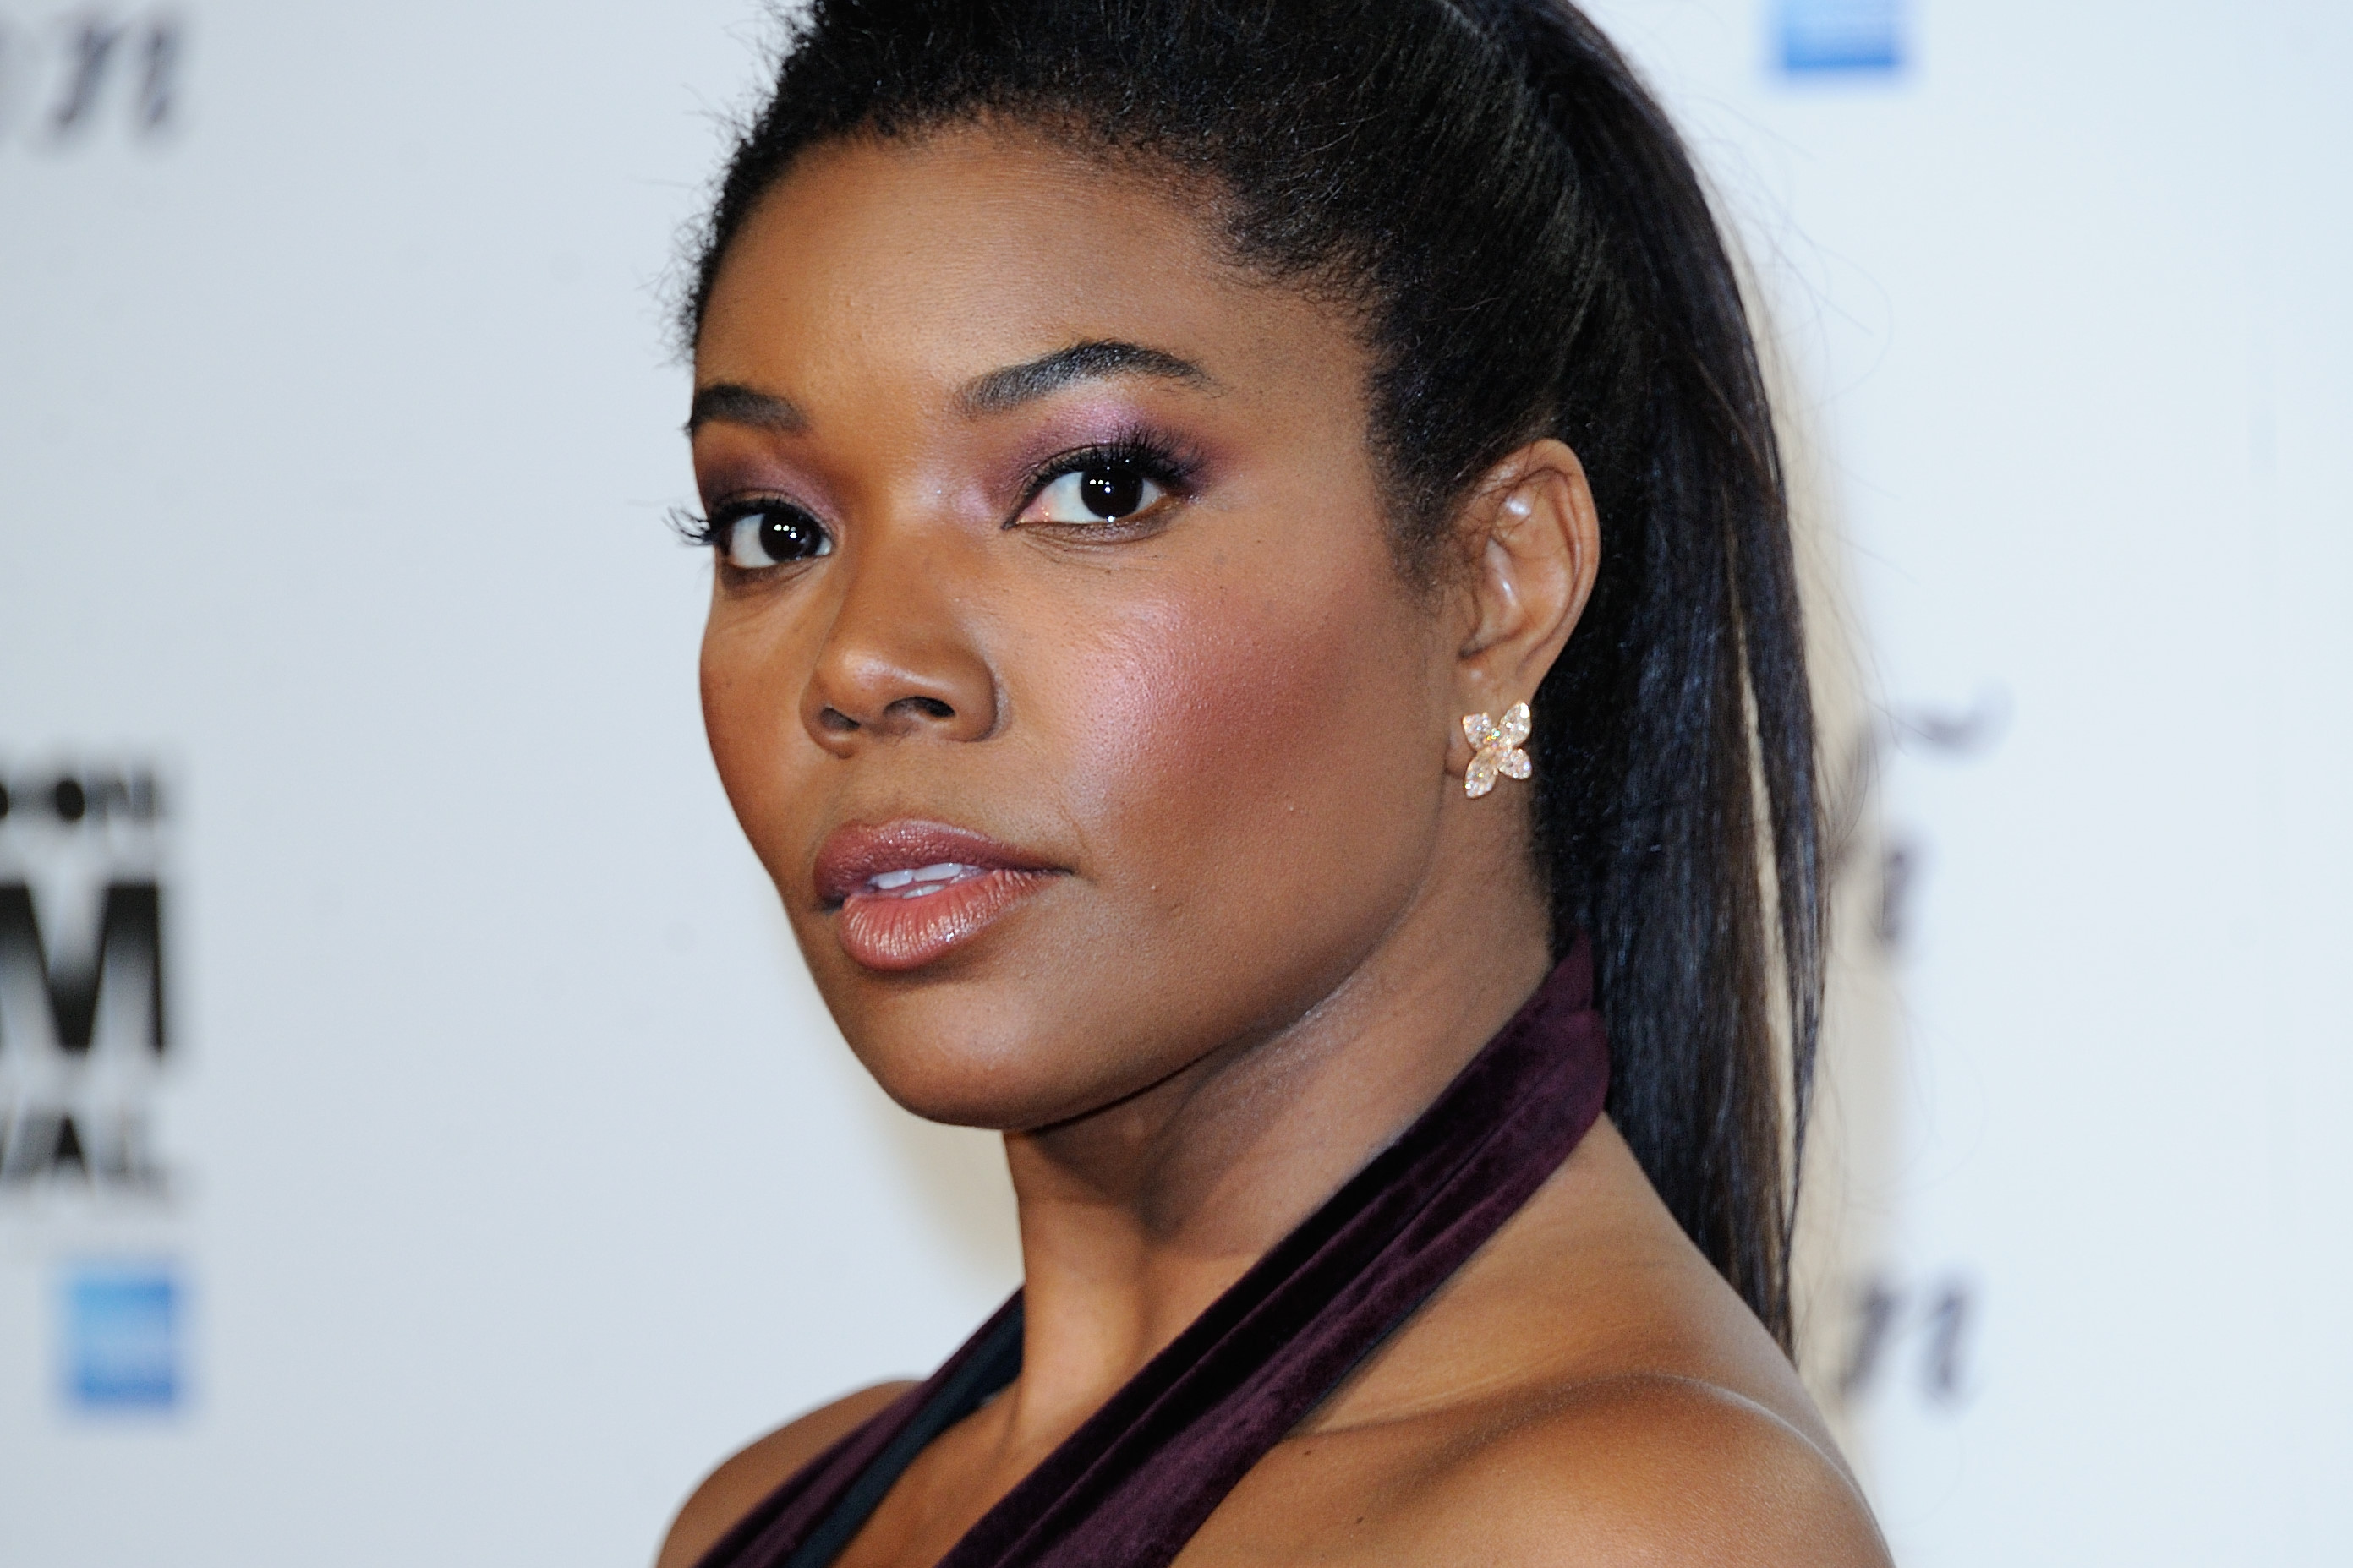 Gabrielle union show on bet trade binary options online